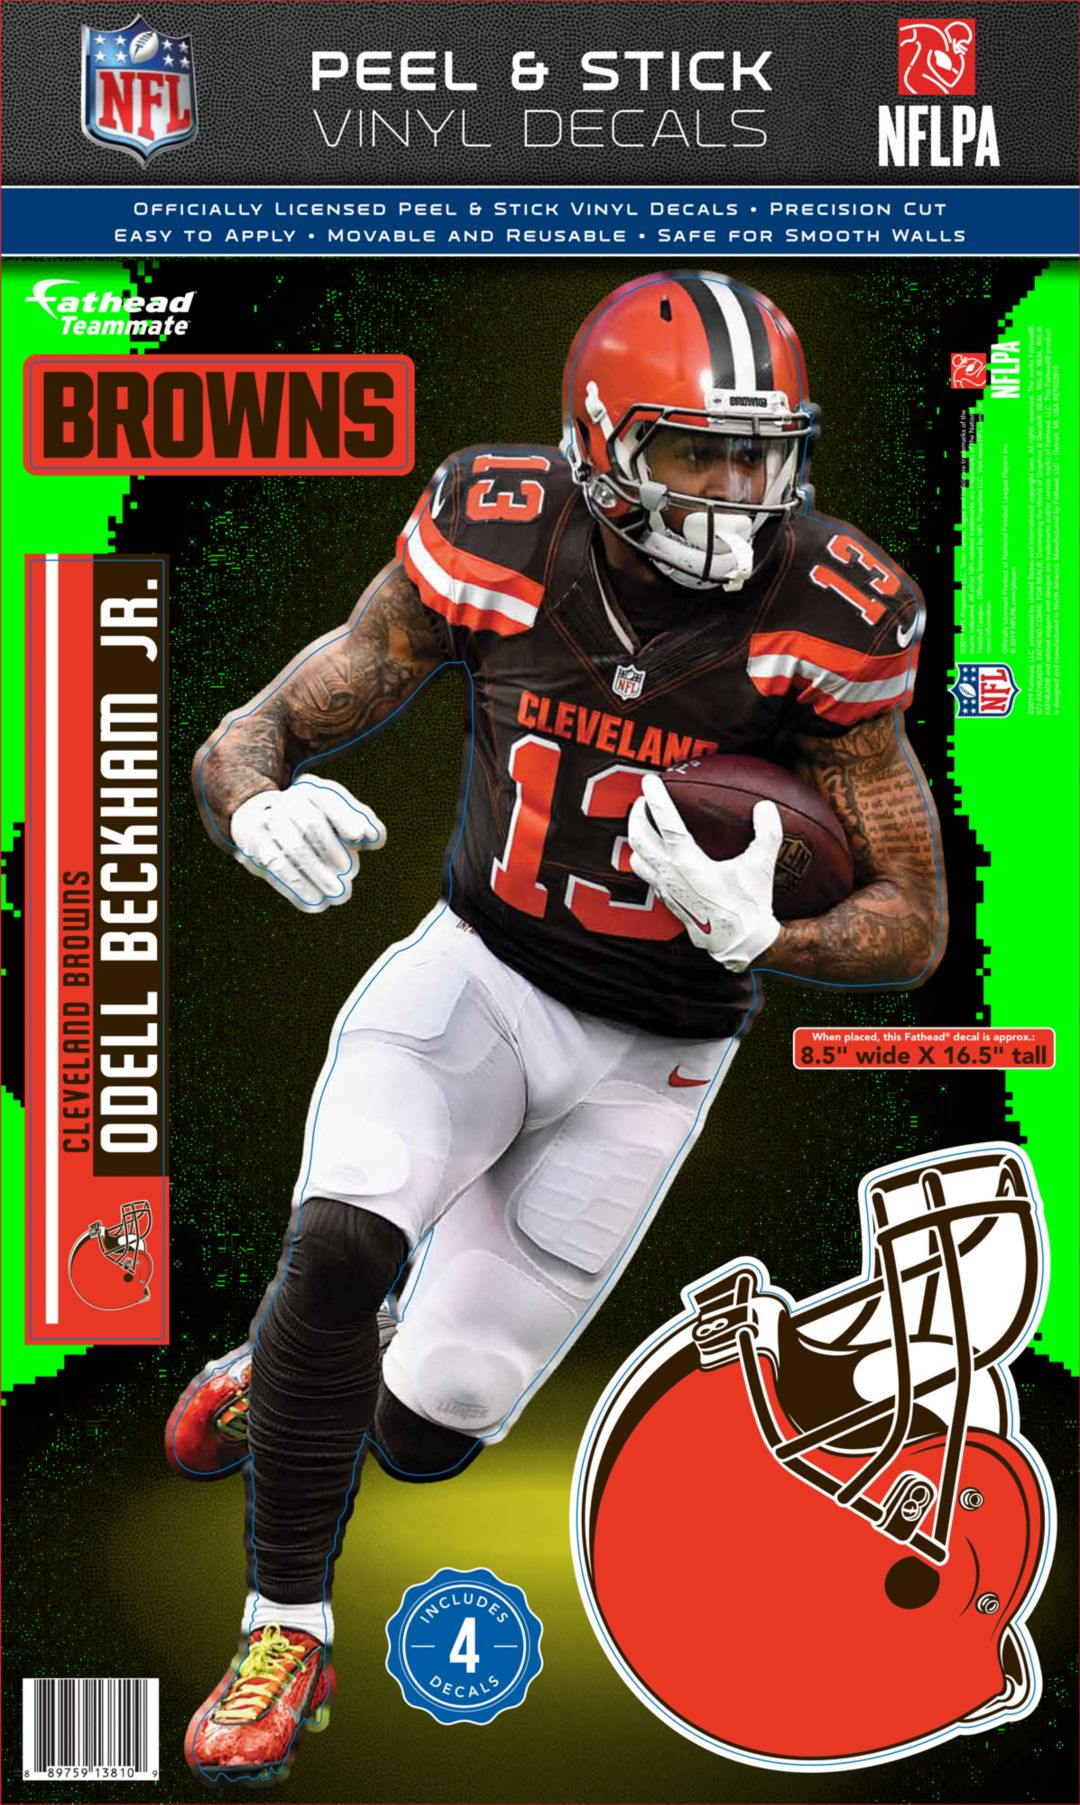 reputable site 4412e 2afc7 Fathead Cleveland Browns Odell Beckham Jr. Teammate Wall Decal